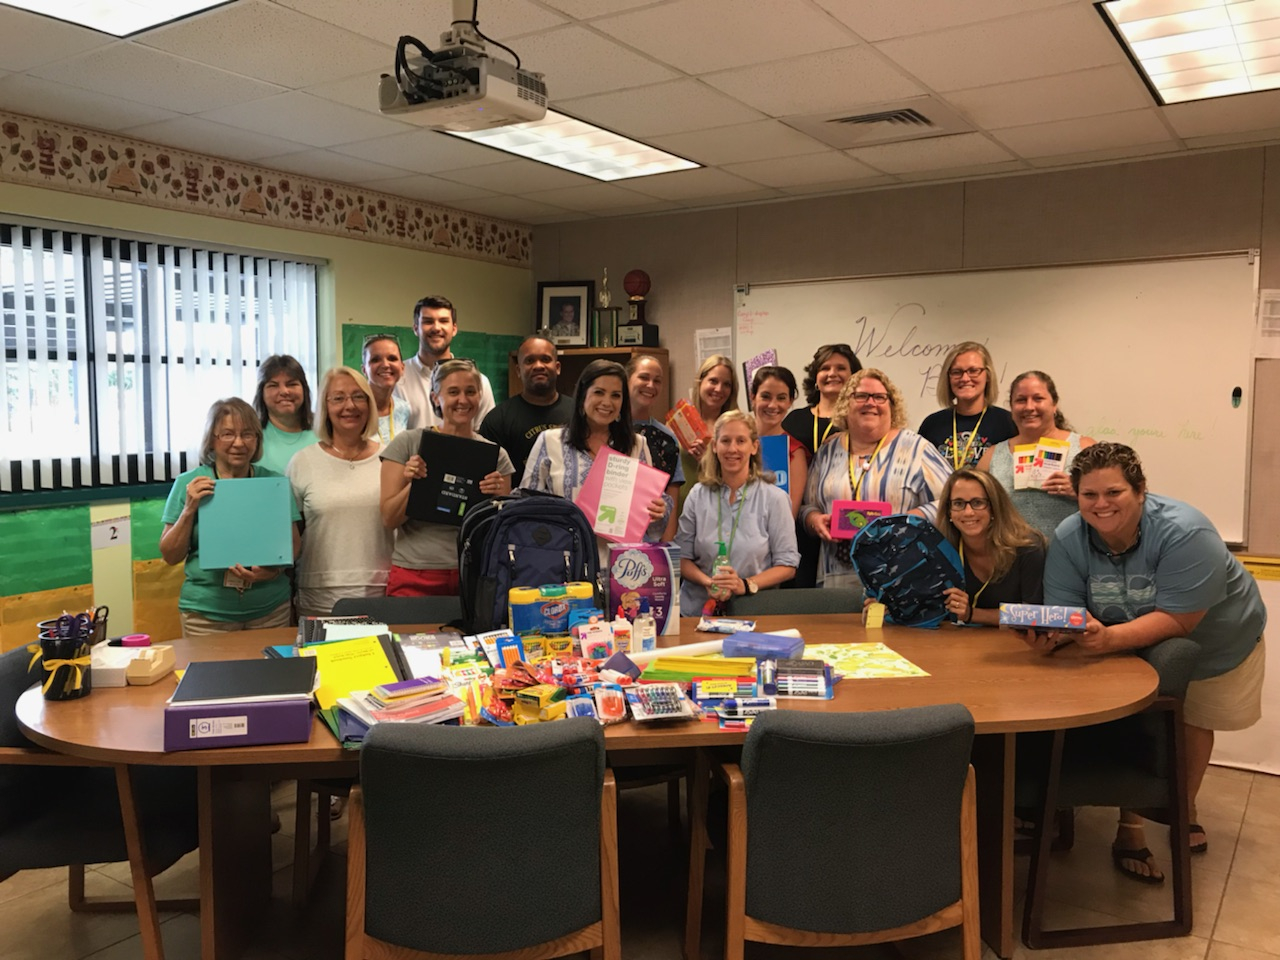 Pictured L to R: Citrus Elementary presentation including Sandy Peters, Cathy Renninger, Sue DiDomizio, Kim Garcia, Connor Bennett, Kelli Mejia, Ms. Hurley, Mike Reed DSRE), Julie Durazzo, Andi Monroe, Becky O'Donnell, Kaitlin Embrey, Tiffany Carlsen, Terry Parker, Kelly Vanbuskirk, Kim Rahal, Lisa Segroves, Nicole Deltufo